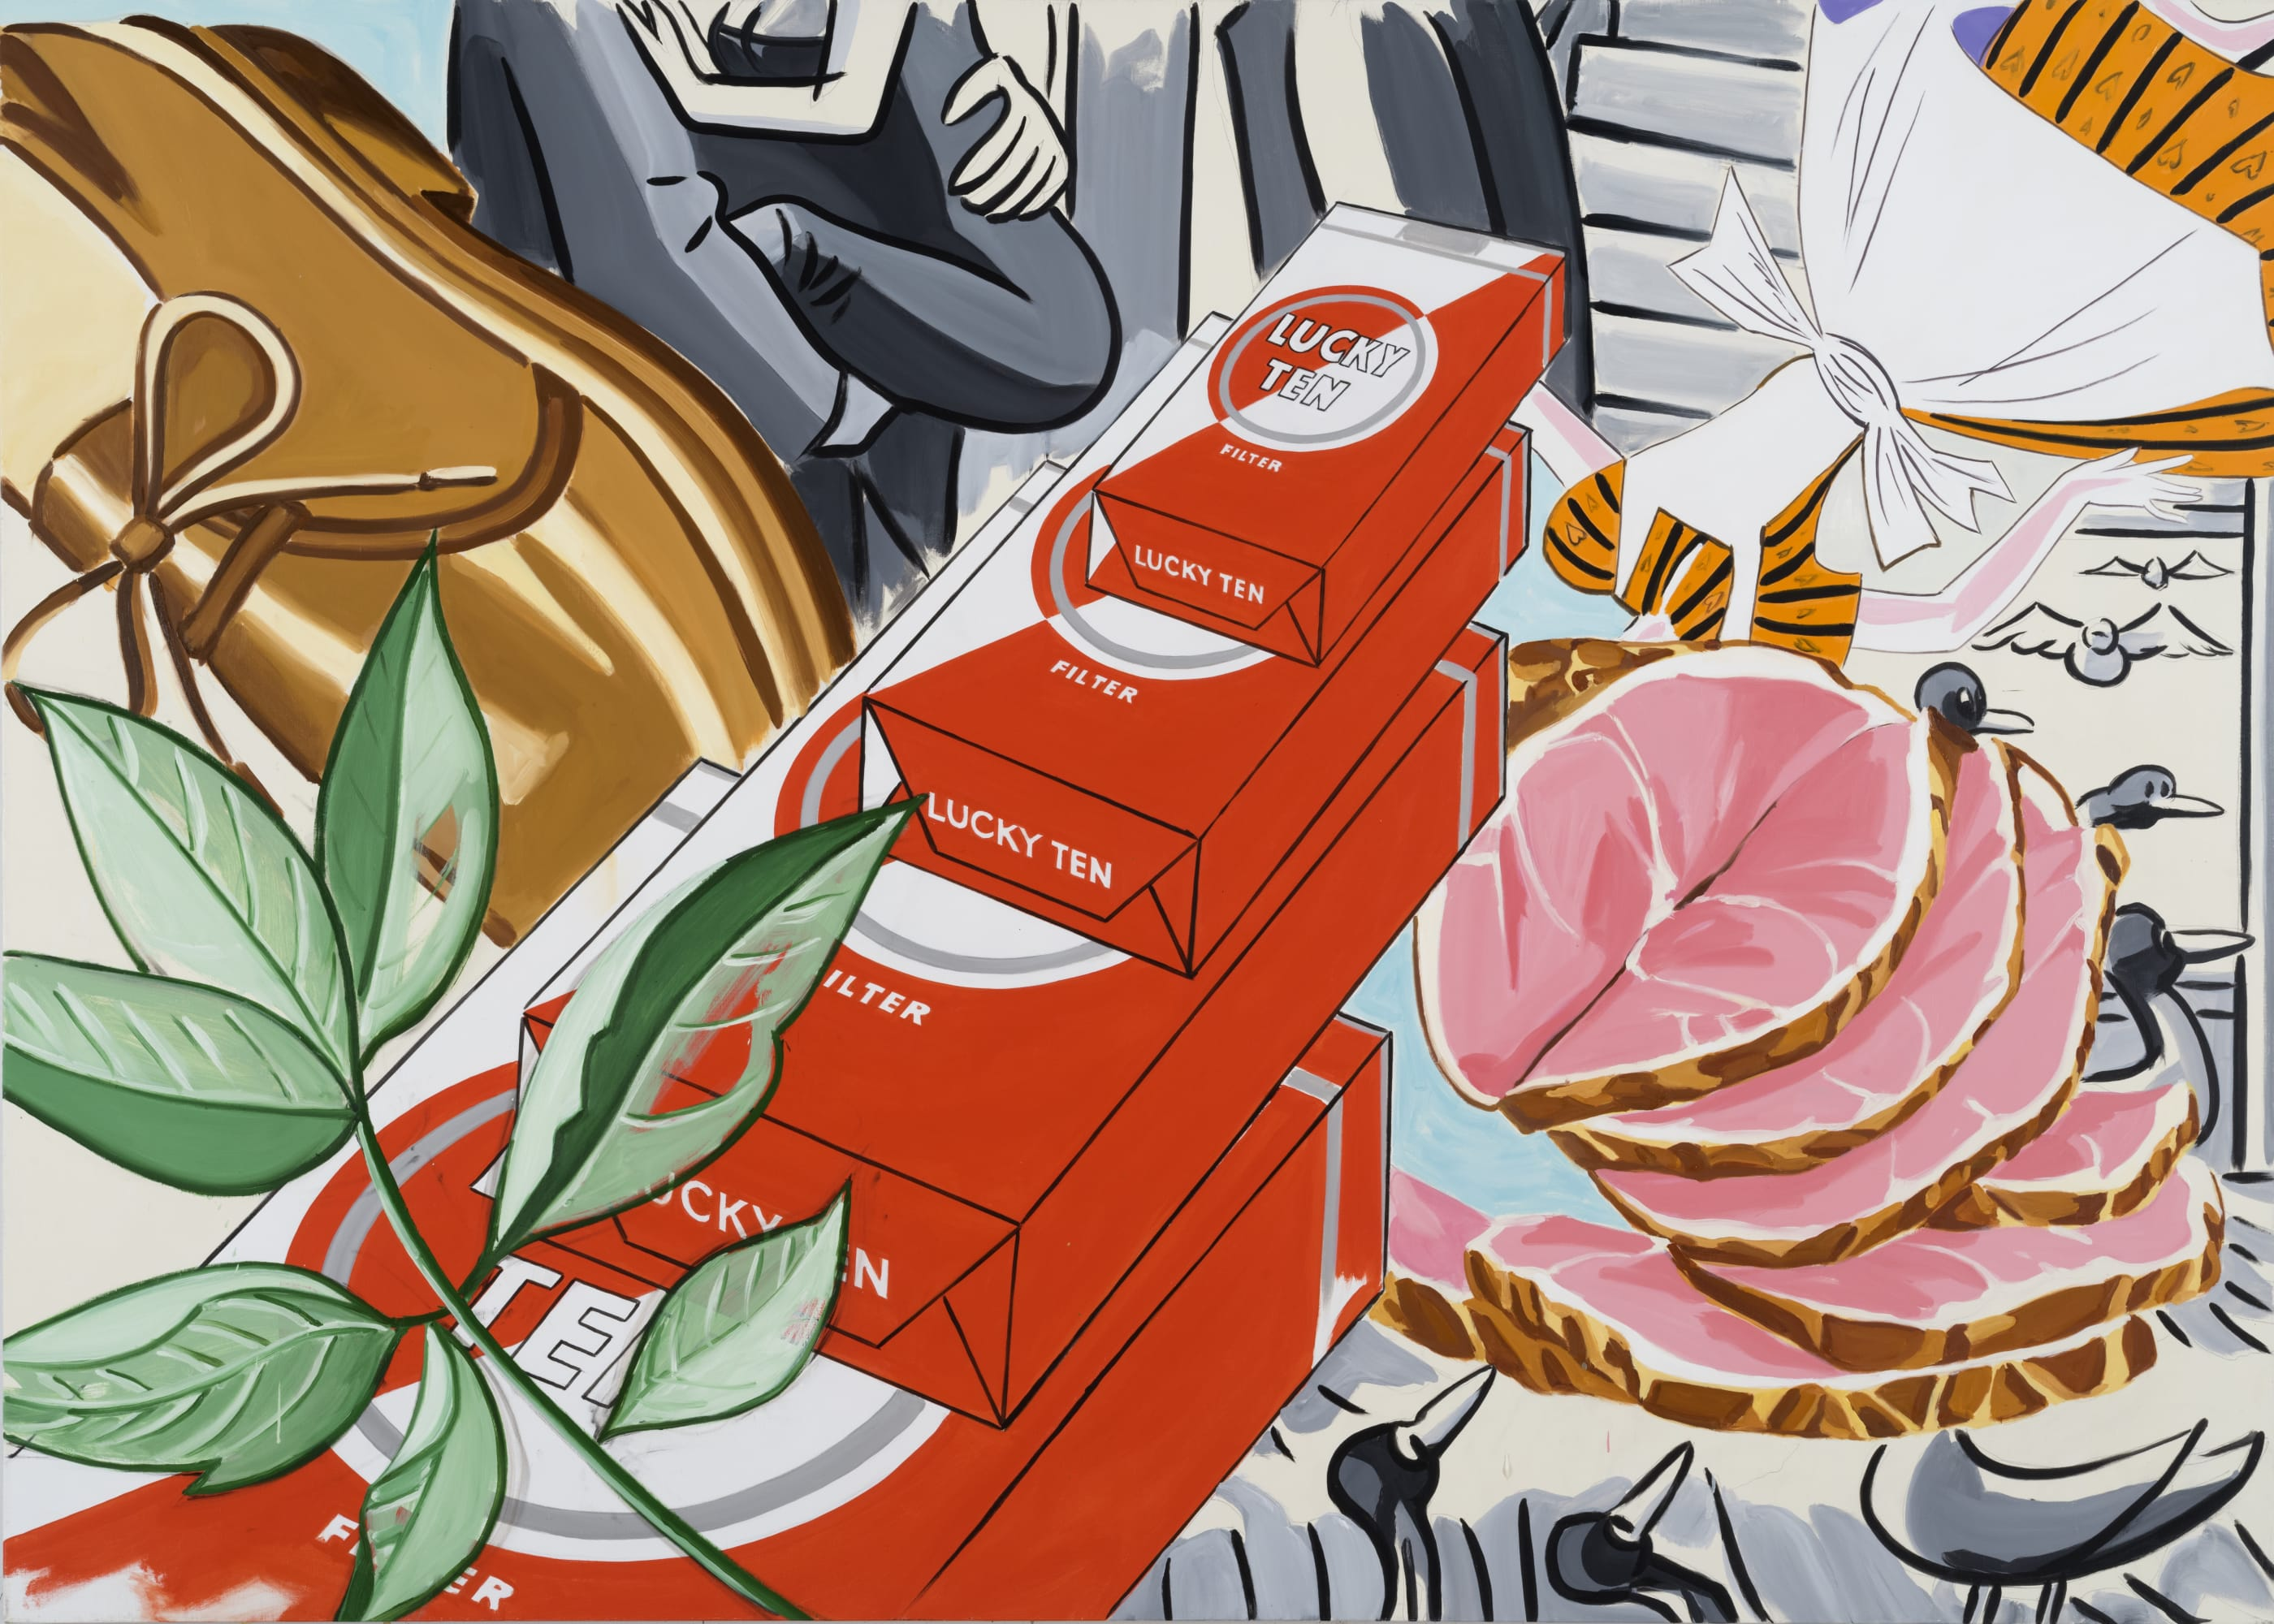 David Salle, Forget School - Remember Camp (2019); Self-Ironing Pants & Other Paintings at Thaddaeus Ropac Paris Marais 2020